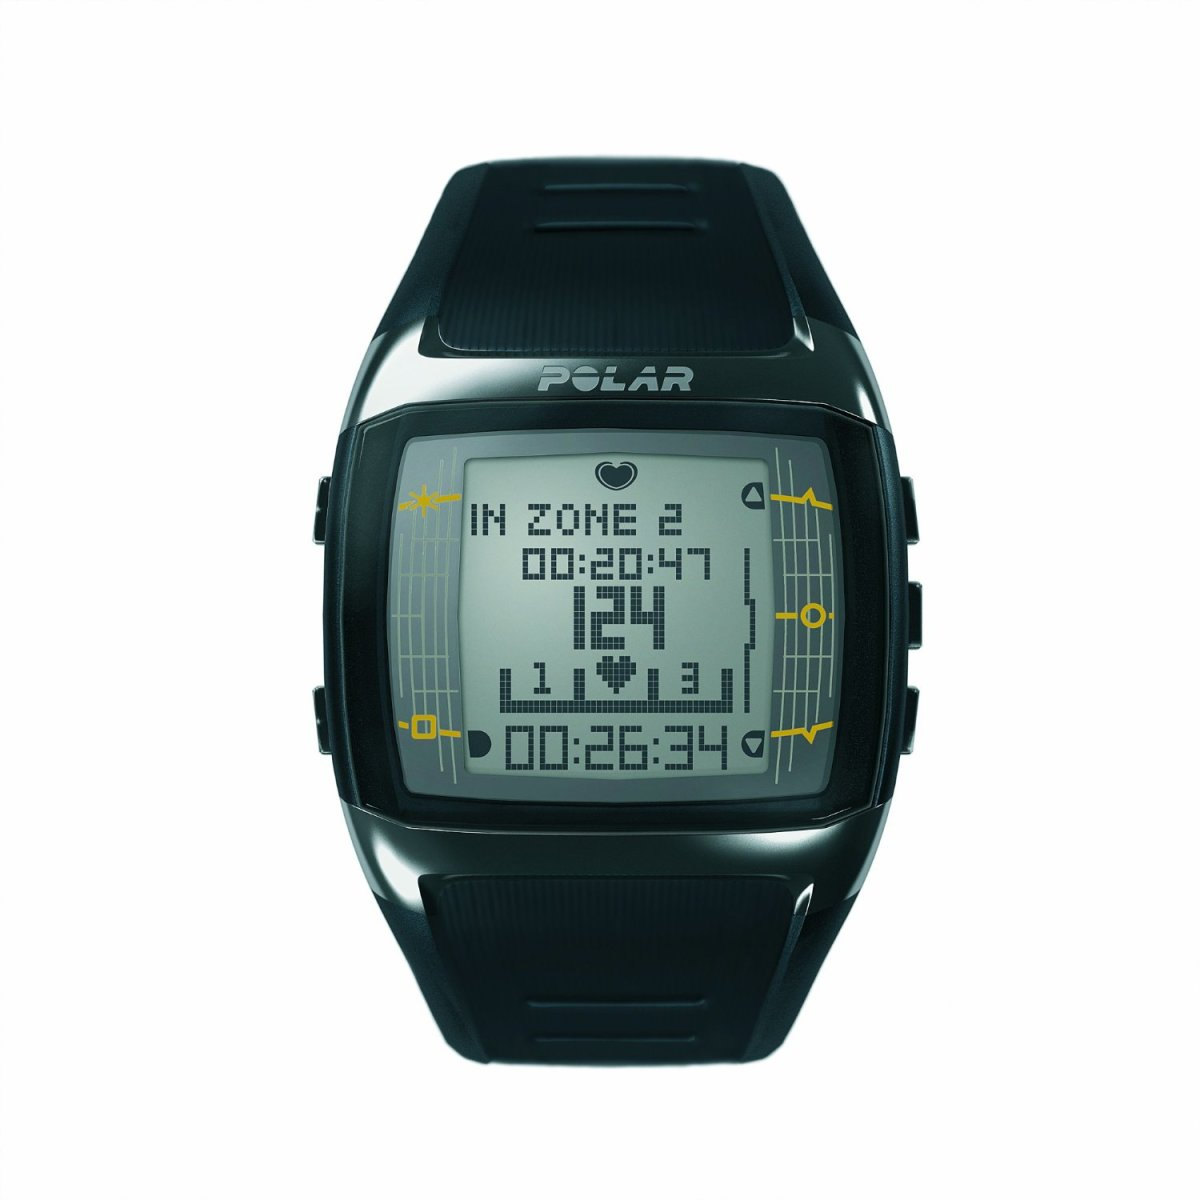 Polar ft60 mens watch.